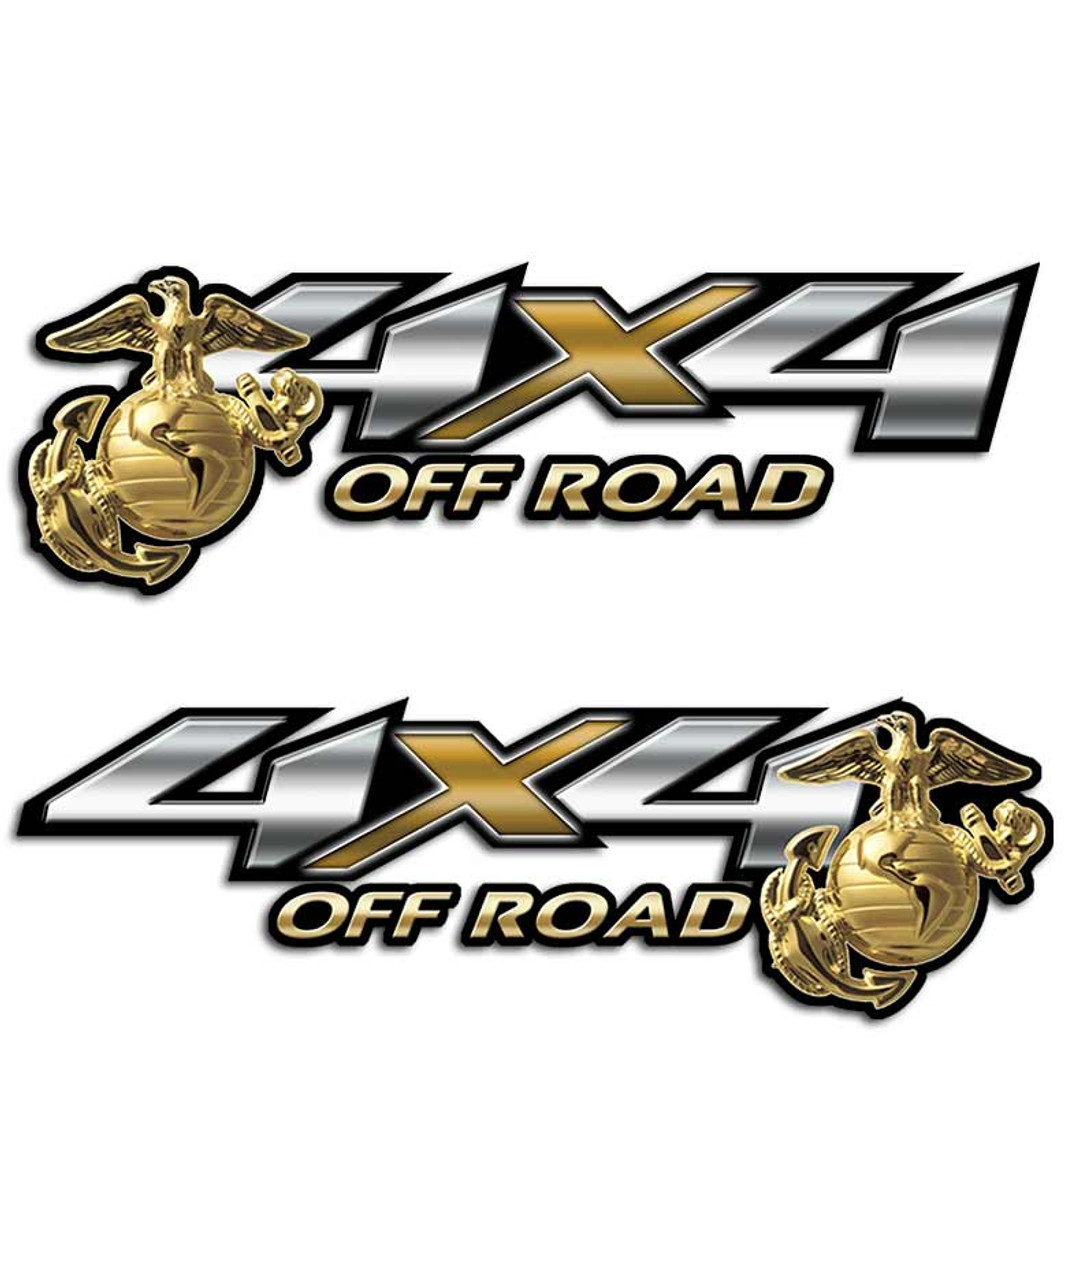 X Military Truck Decals USMC Marines Army Air Force Stickers - 4x4 truck decals